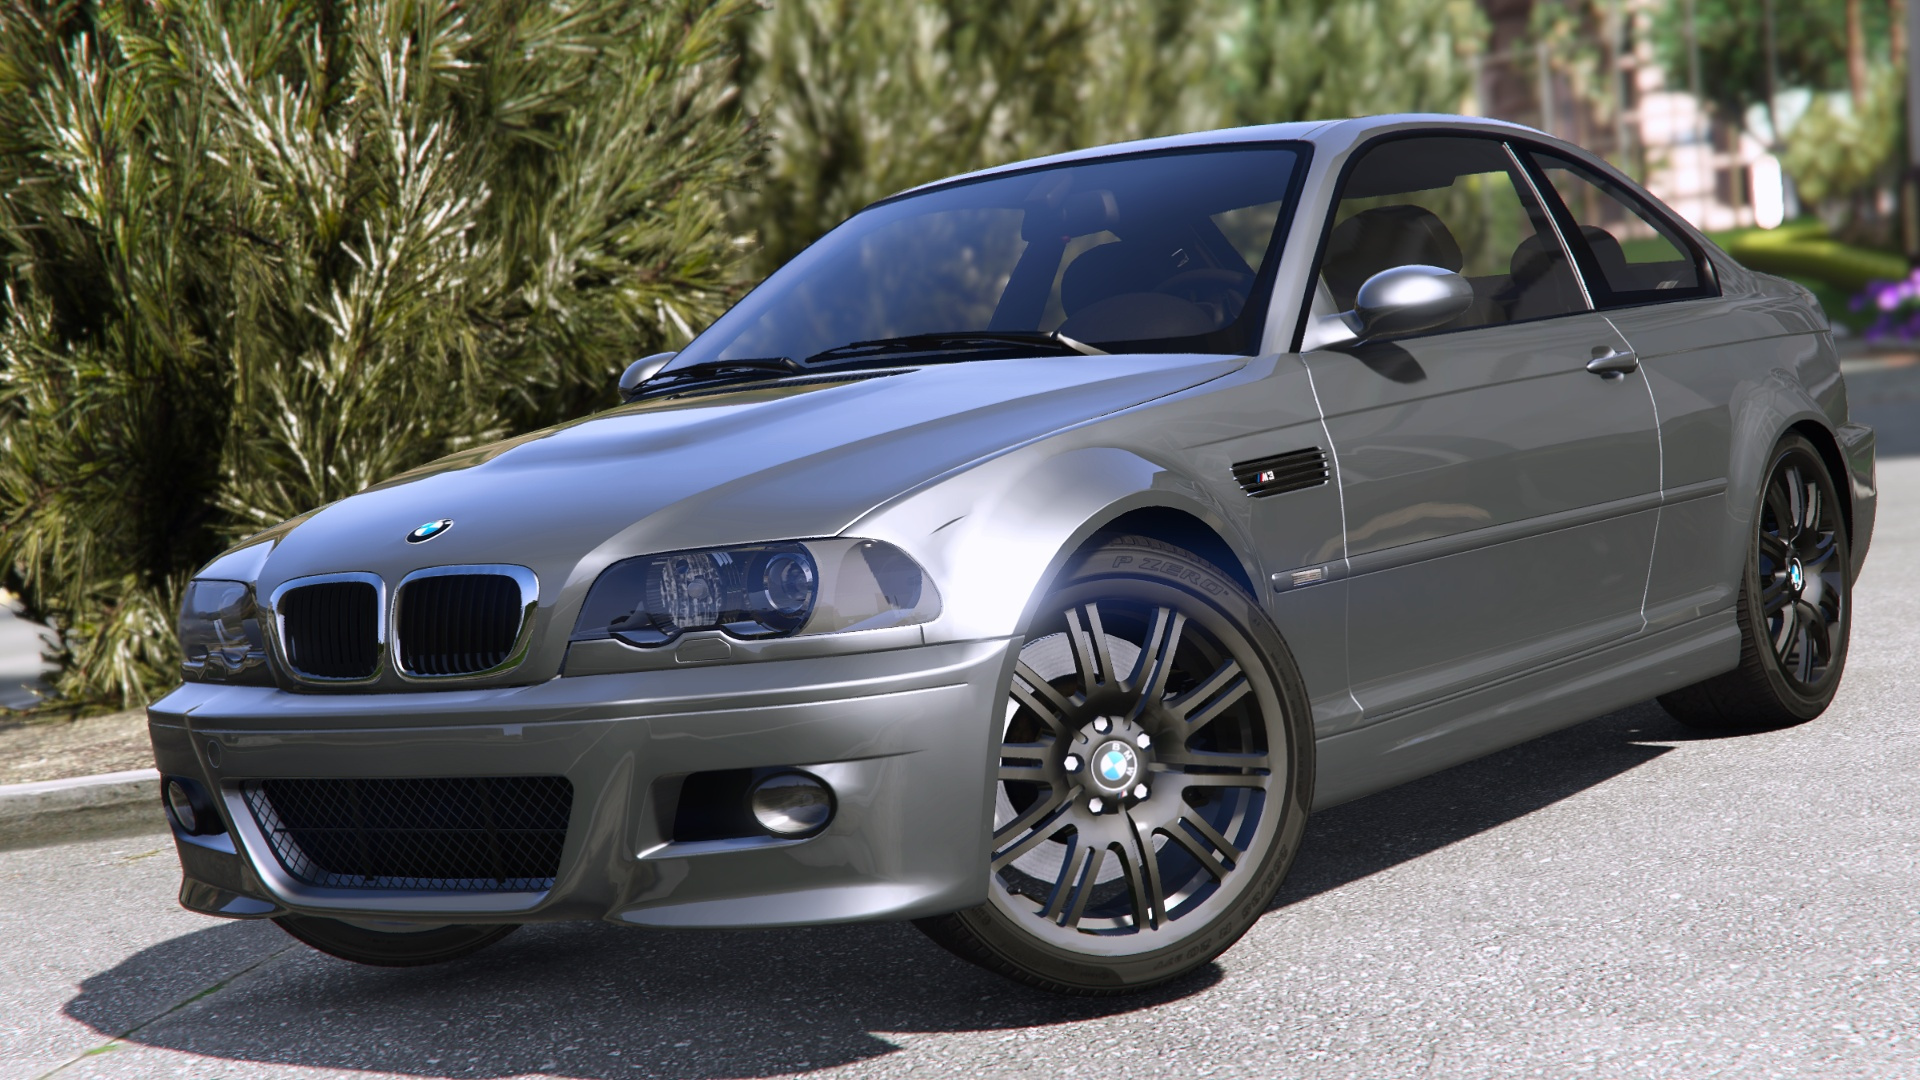 Bmw M3 E46 2005 Add On Replace Tuning Gta5 Mods Com